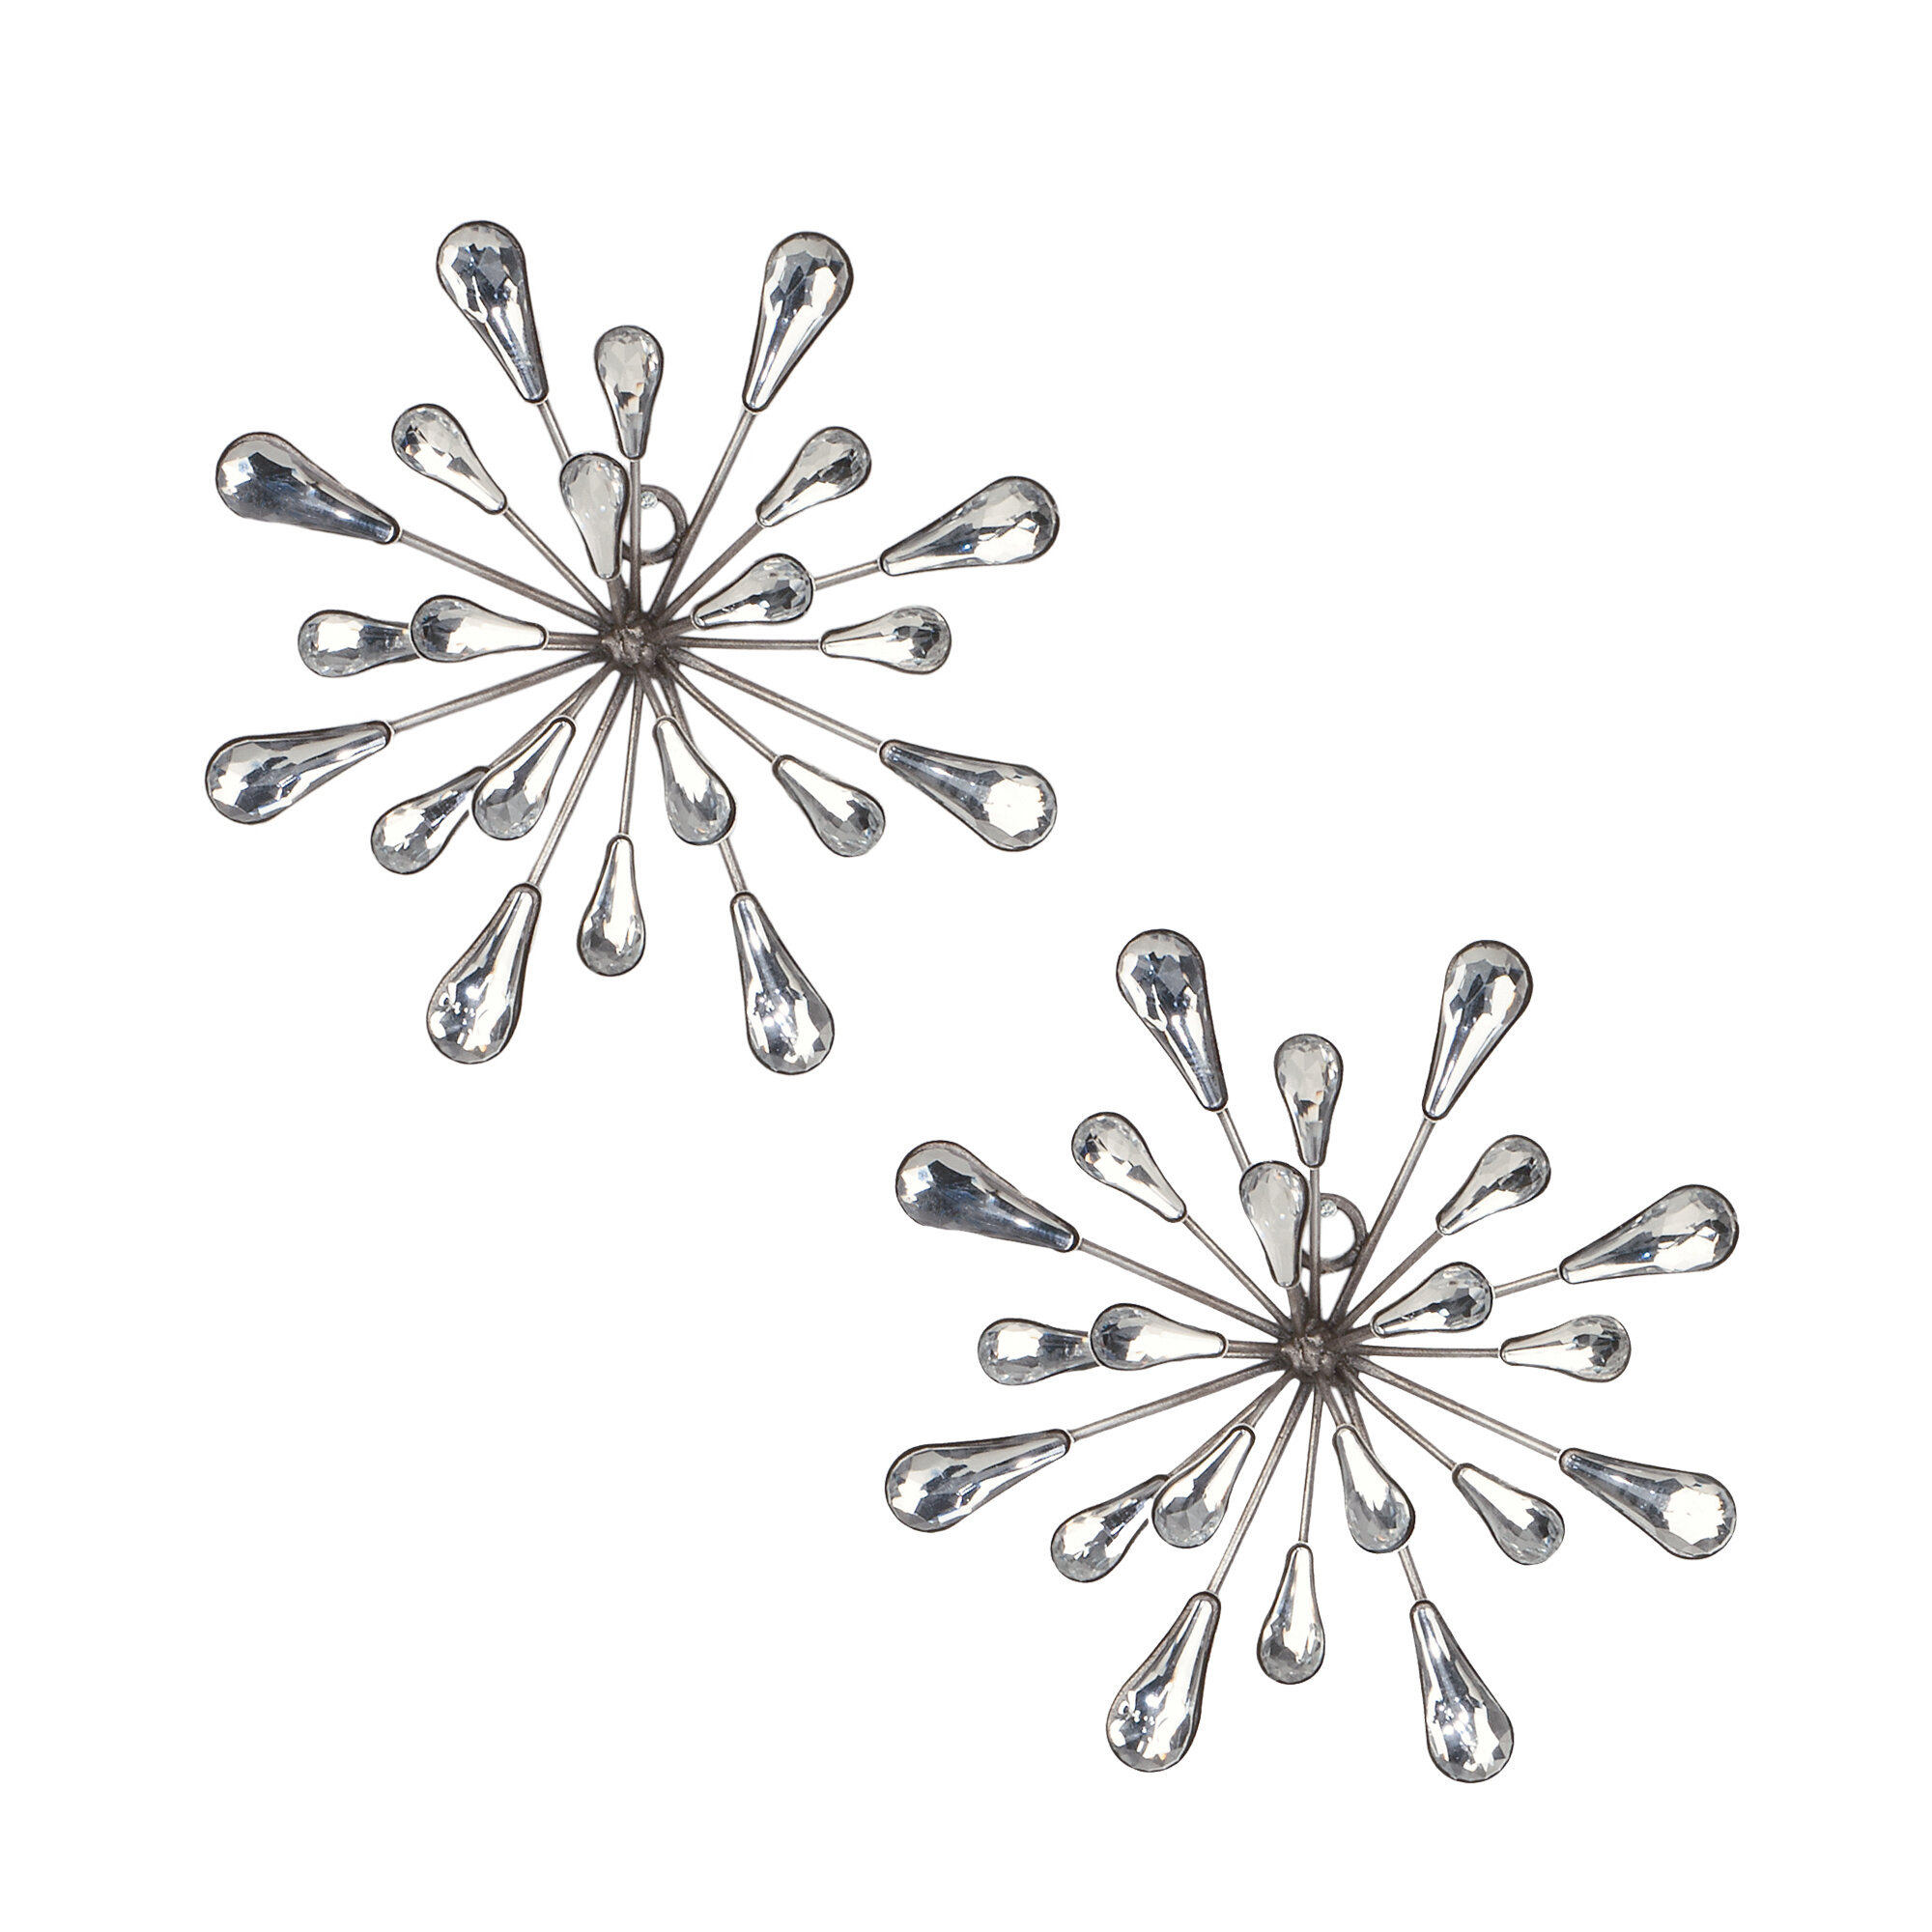 Trendy 2 Piece Starburst Wall Decor Sets With Regard To 2 Piece Starburst Wall Décor Set & Reviews (View 11 of 20)